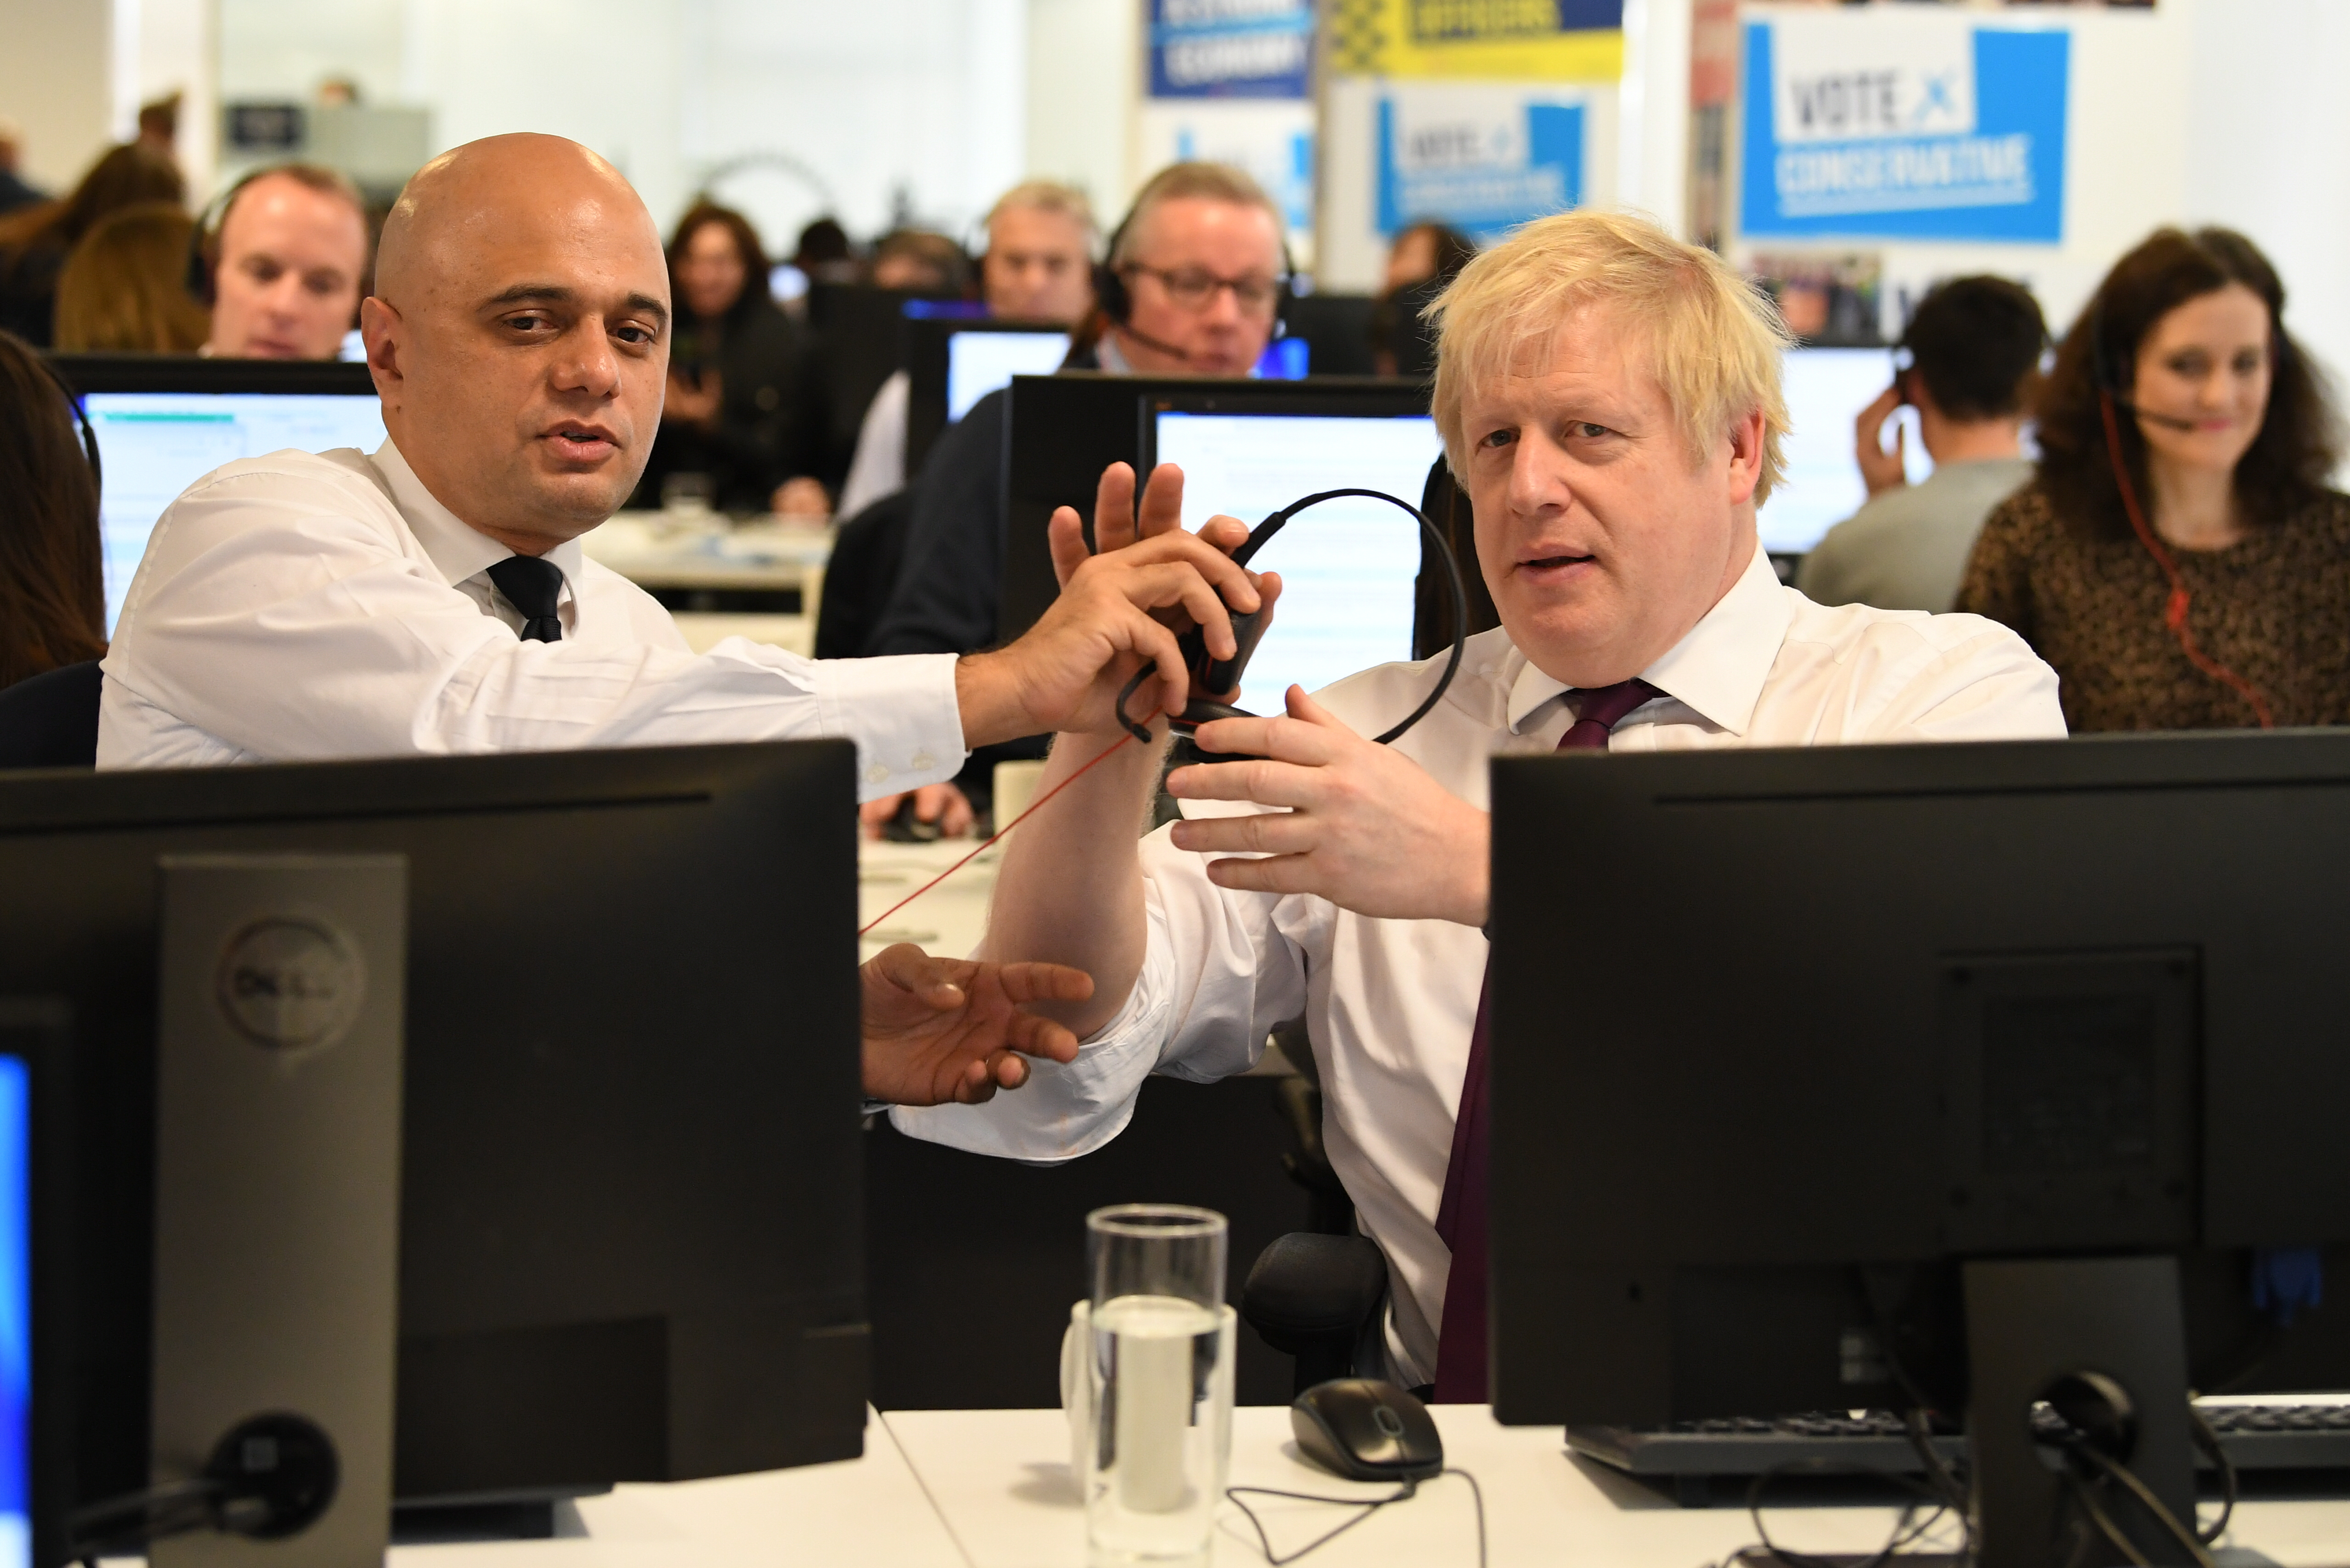 Prime Minister Boris Johnson and Chancellor Sajid Javid with other members of the Cabinet at Conservative Campaign Headquarters Call Centre, London, while on the election campaign trail.